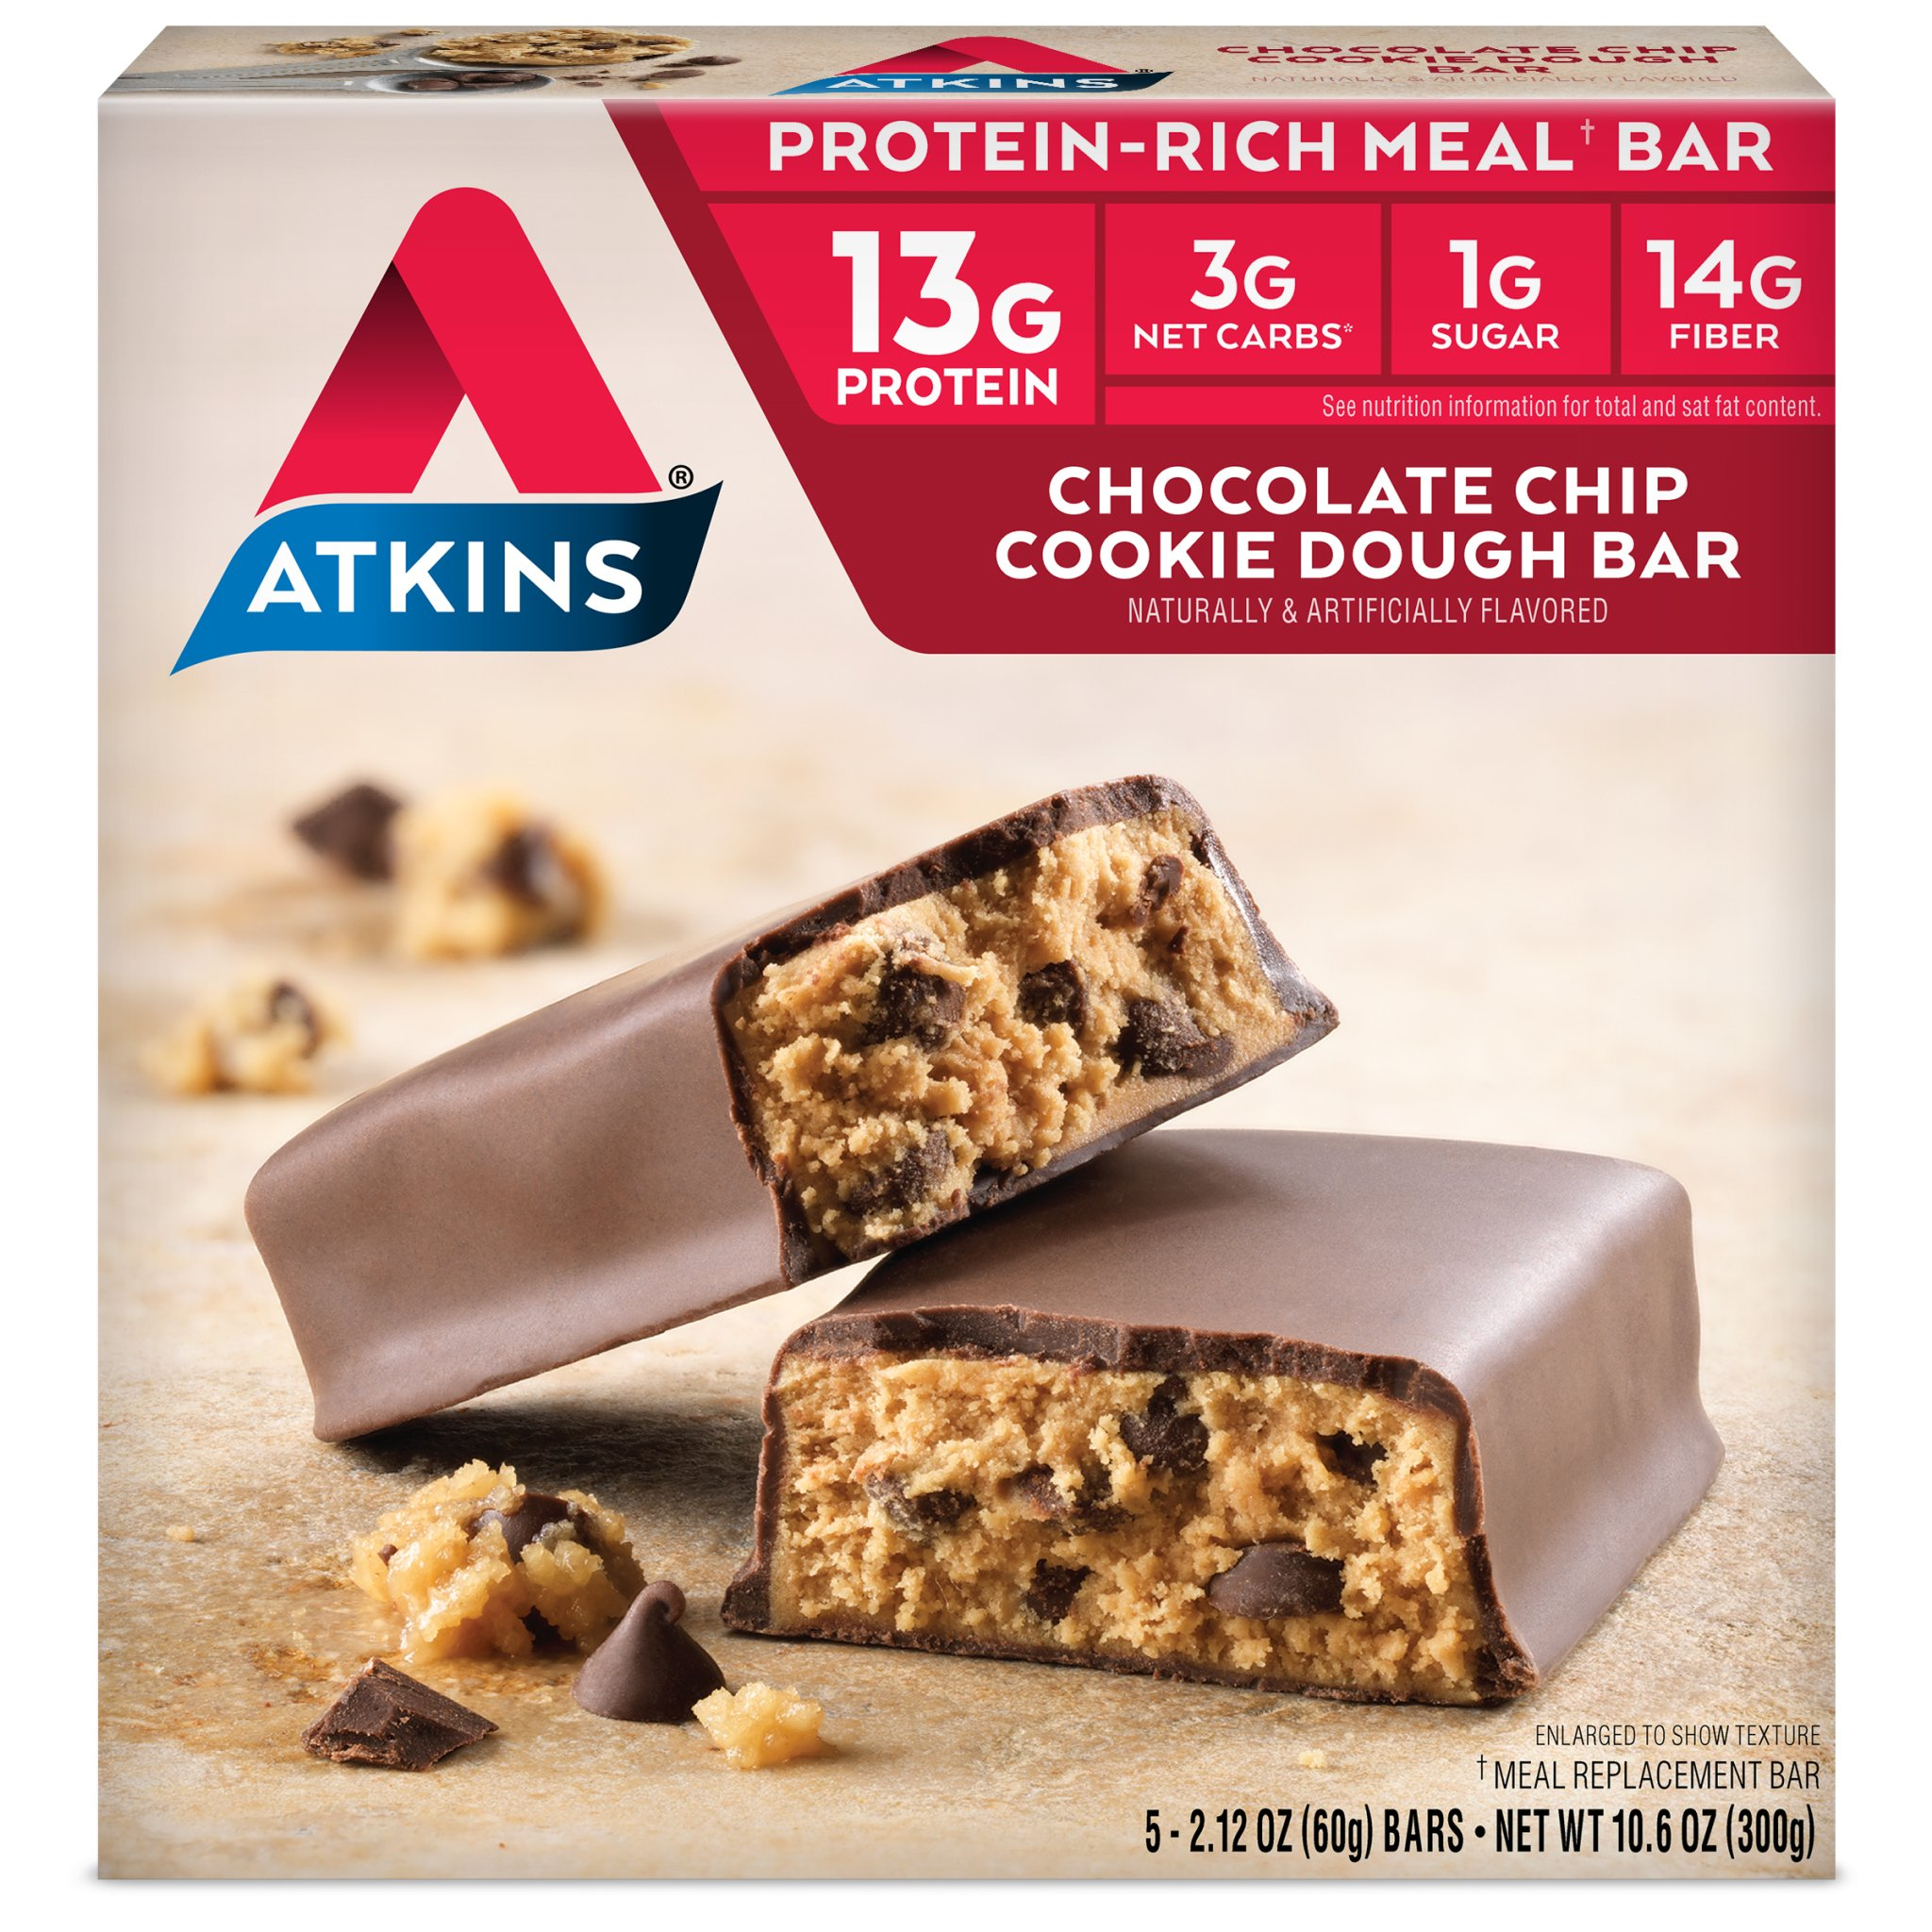 Atkins Protein-Rich Meal Bar, Chocolate Chip Cookie Dough, Keto Friendly, 5 Count each pack, 10.6 Ounce (Pack of 6)